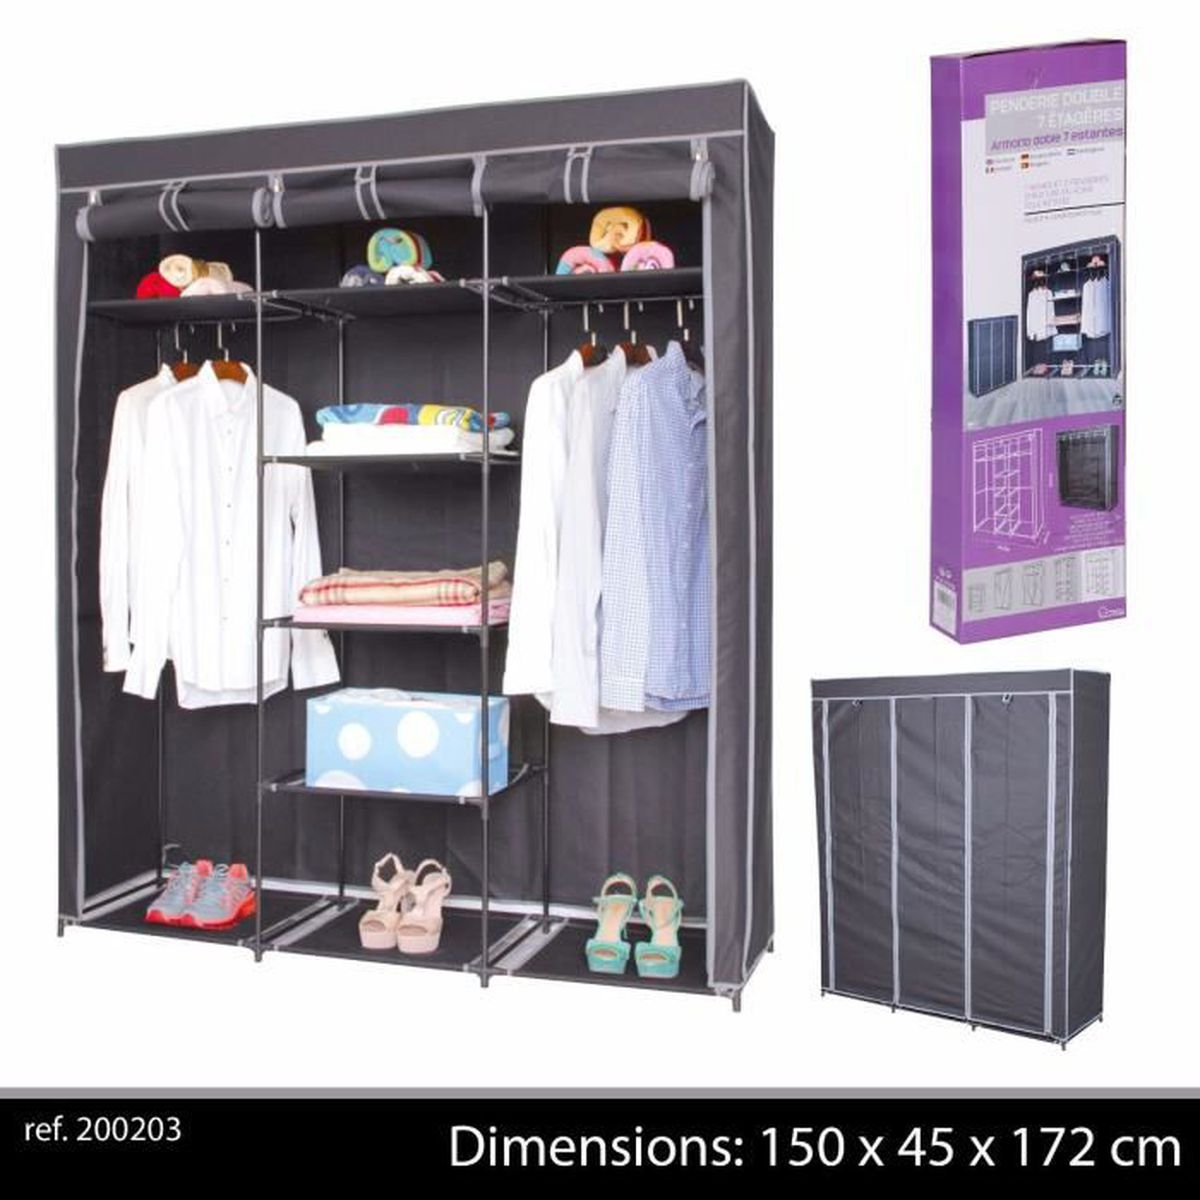 grande penderie etagere armoire de rangement de vetement. Black Bedroom Furniture Sets. Home Design Ideas